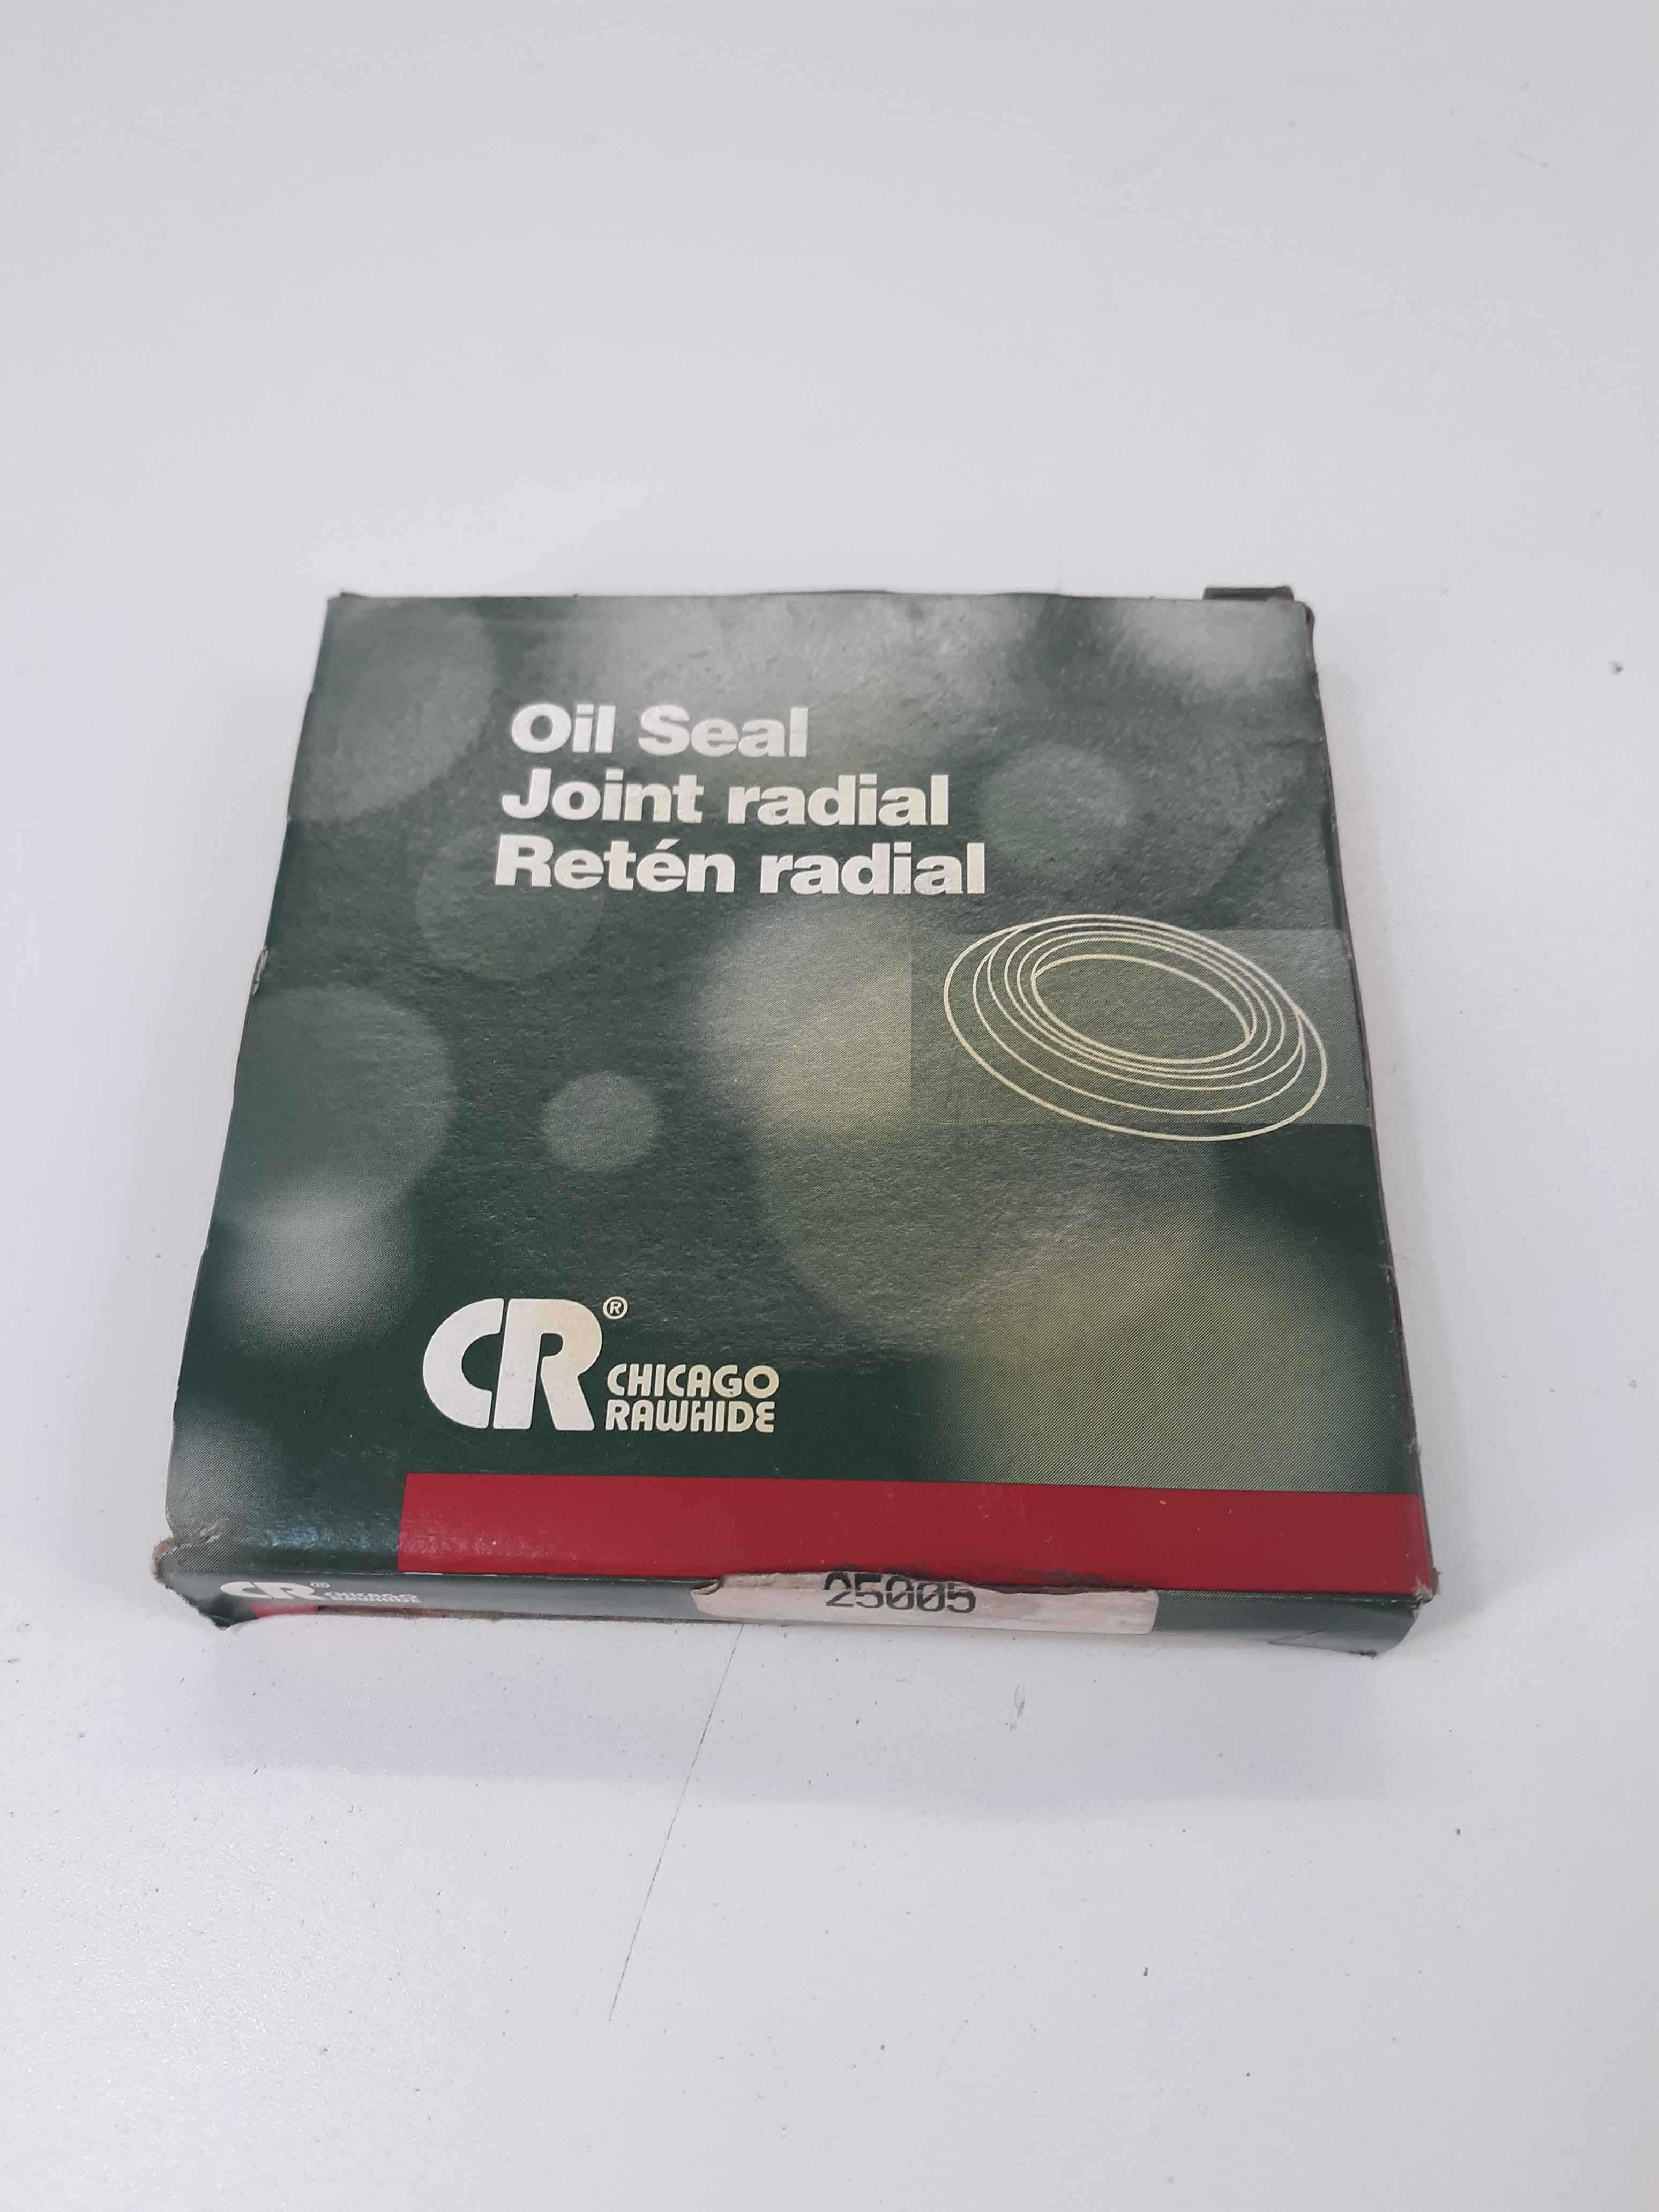 Chicago Rawhide CR 25005 Oil Seal